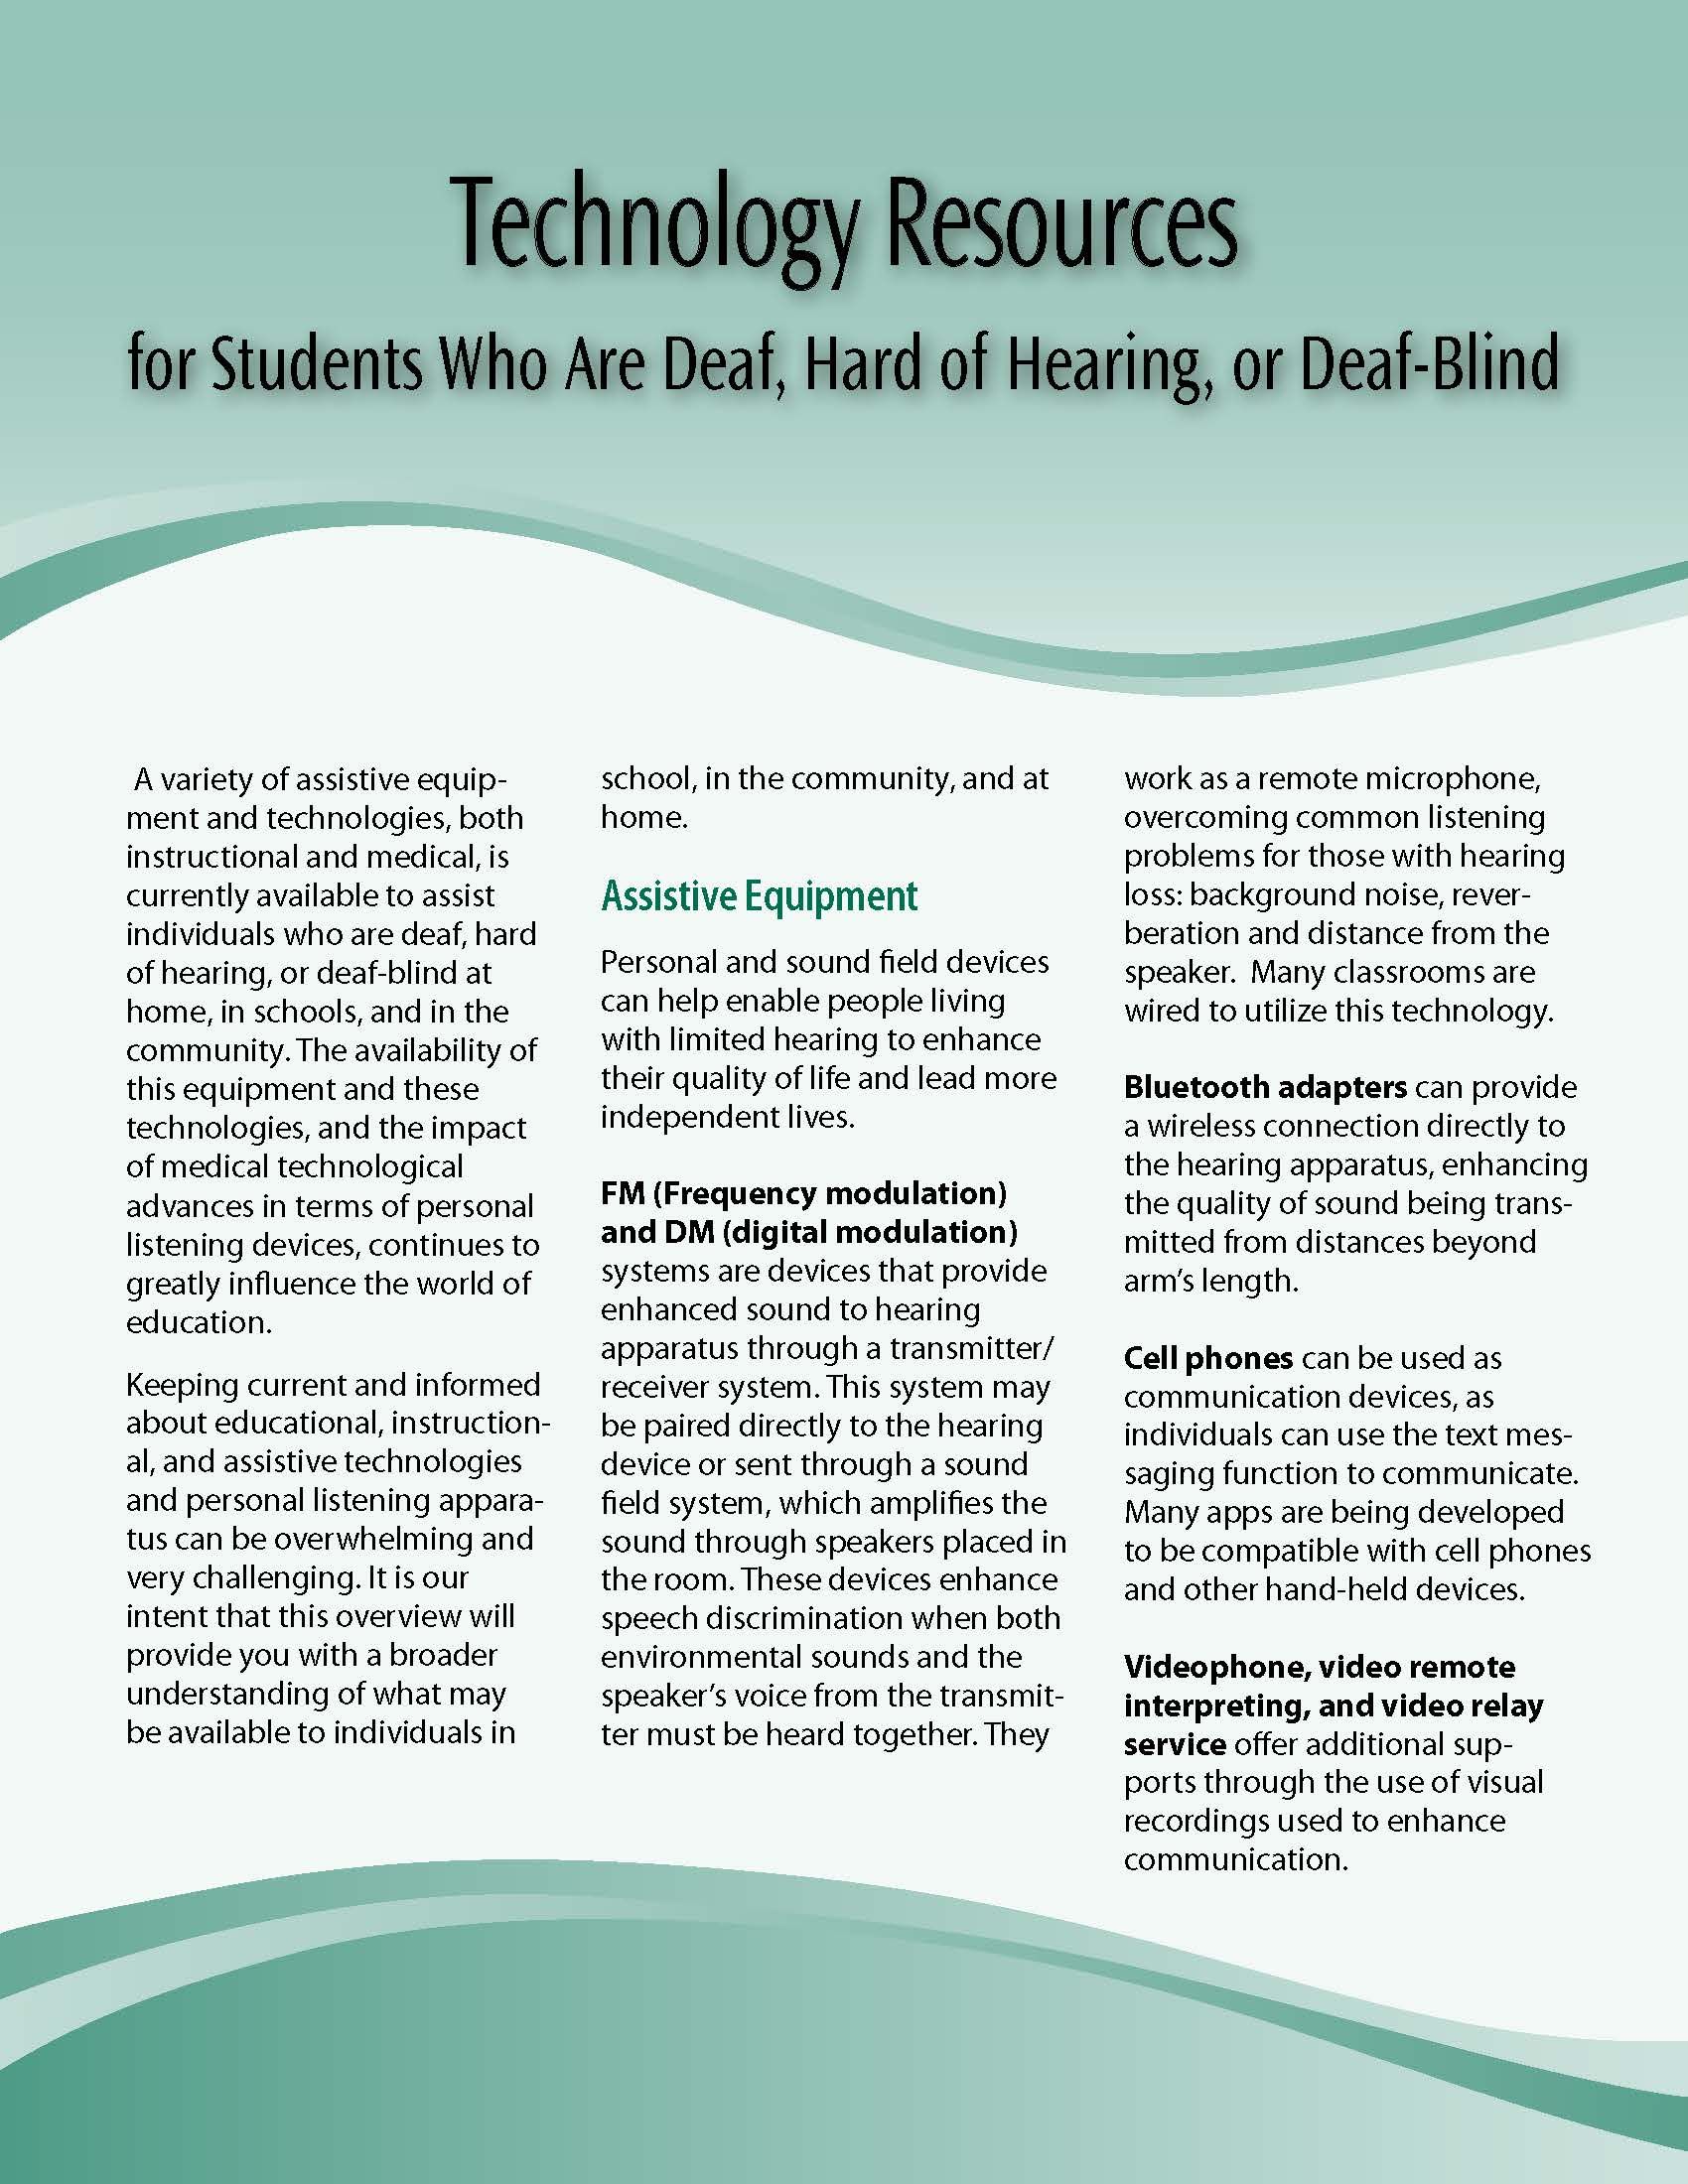 Technology Resources for Students Who Are Deaf, Hard of Hearing, or Deaf-Blind